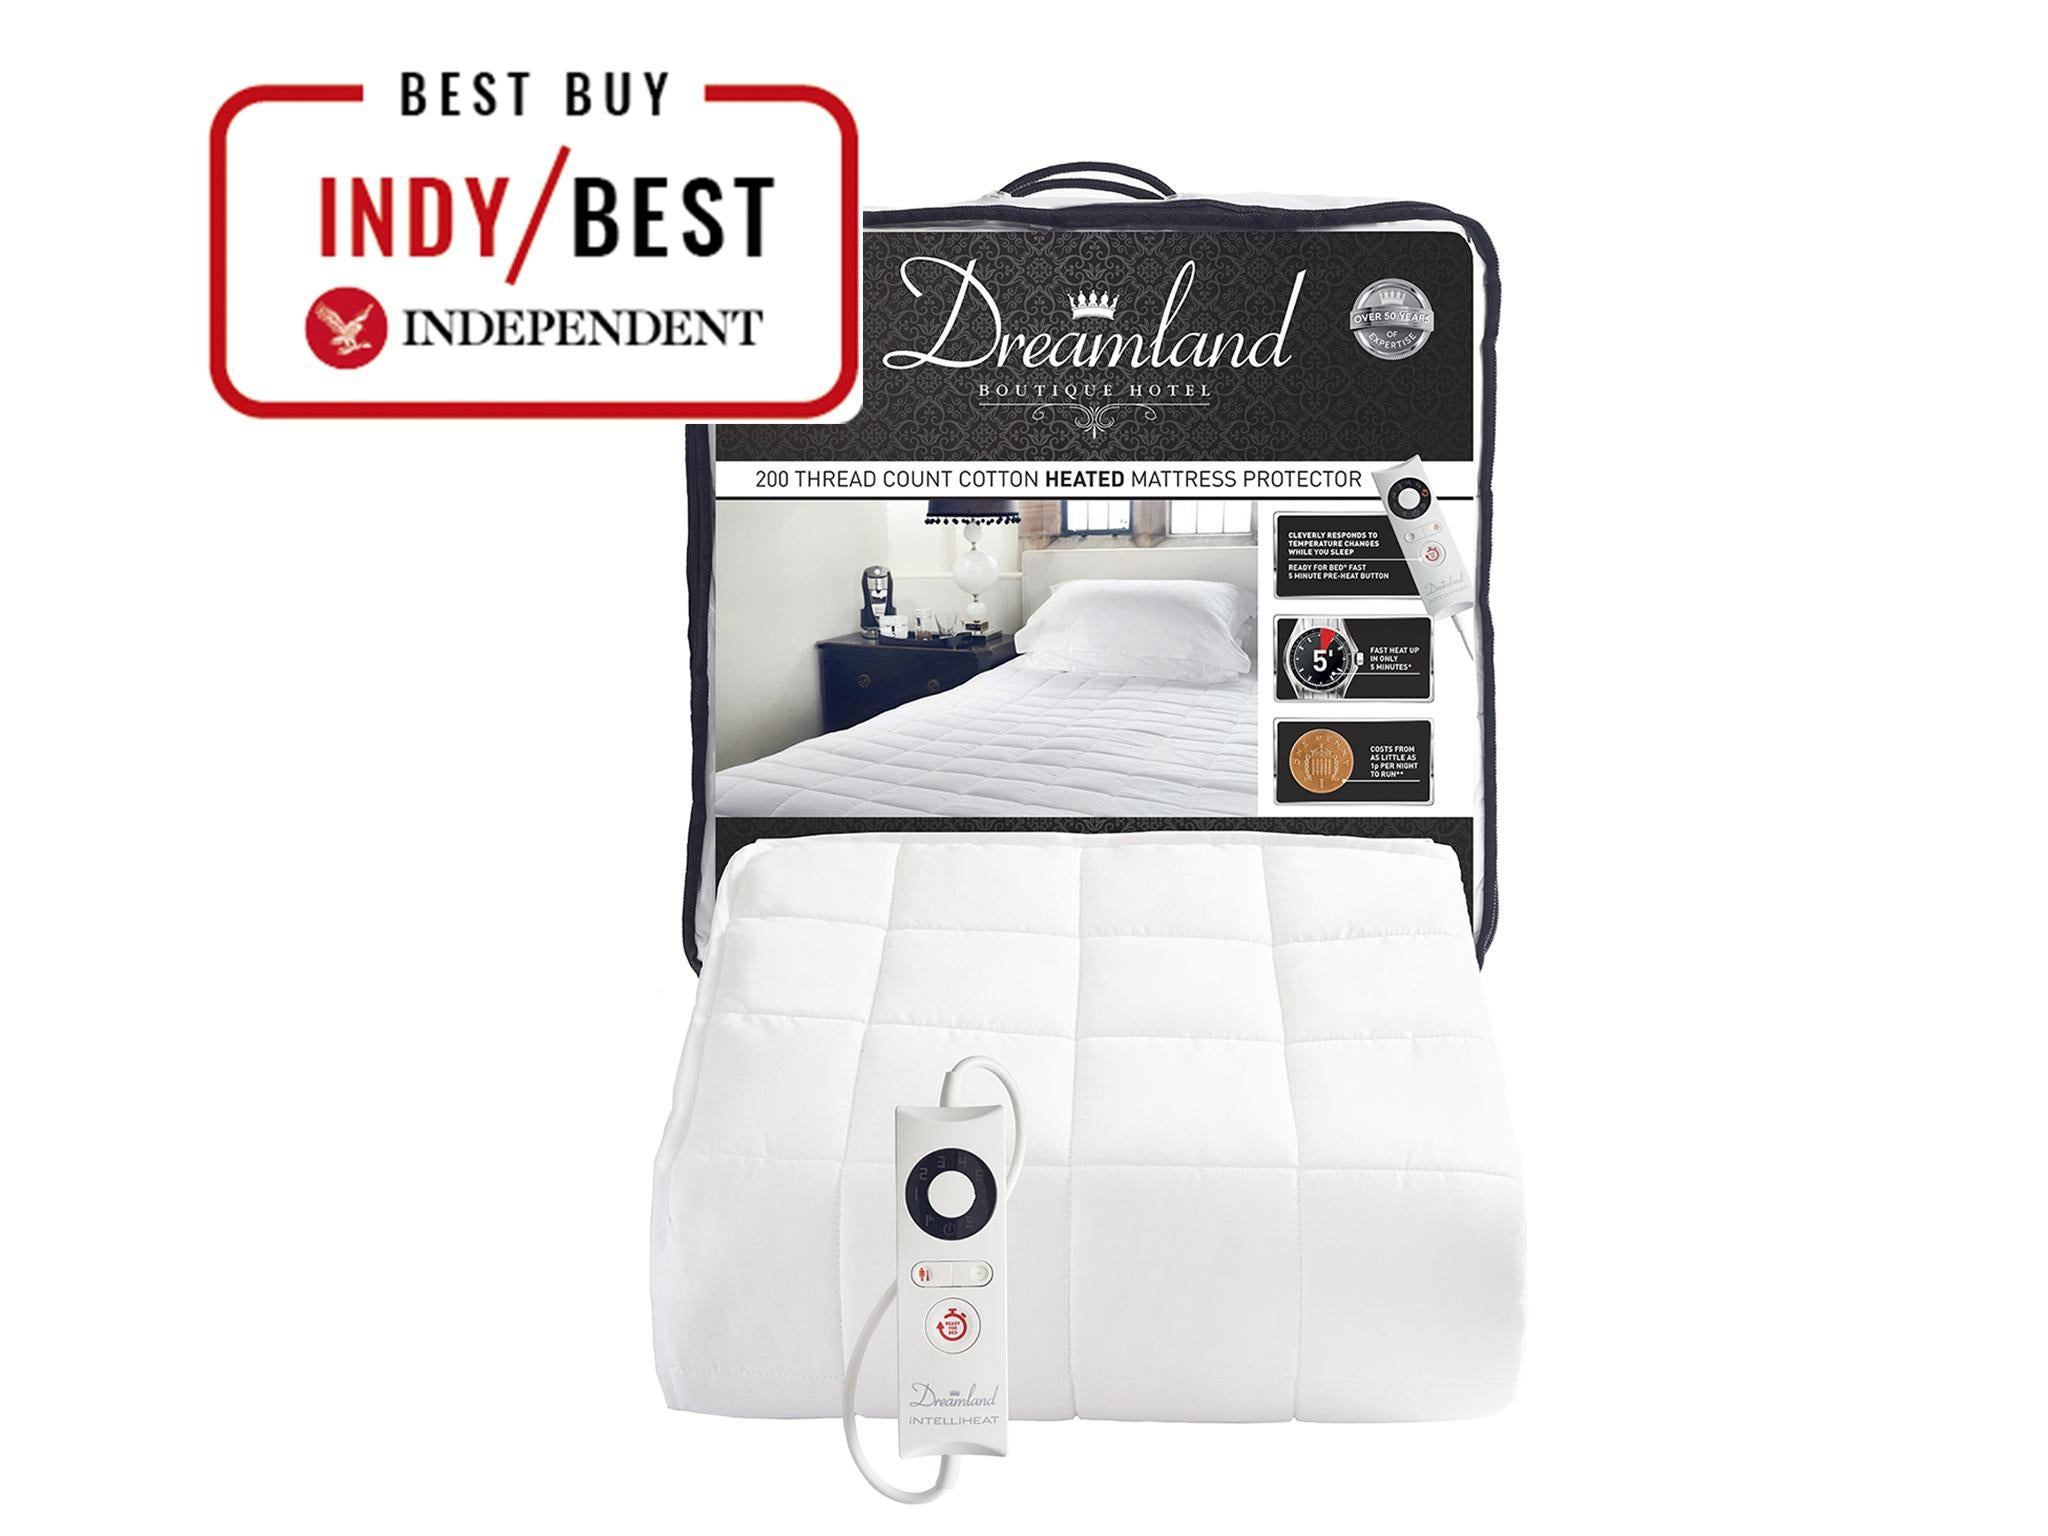 Wondrous 10 Best Electric Blankets The Independent Download Free Architecture Designs Intelgarnamadebymaigaardcom